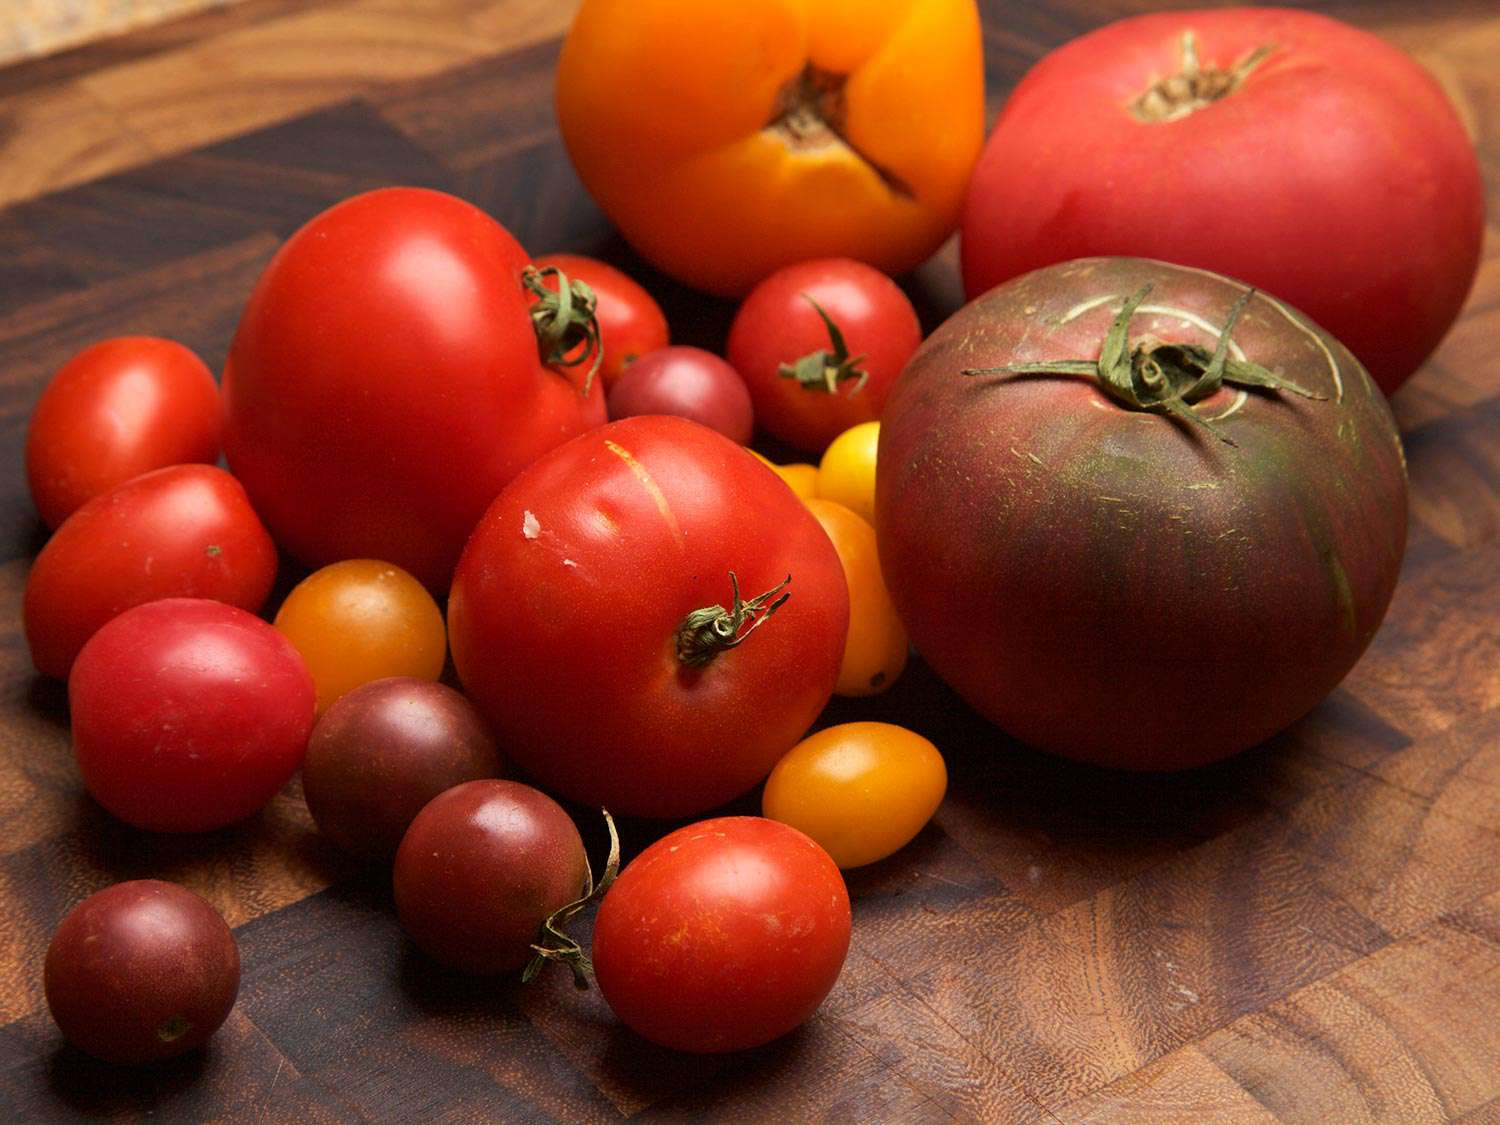 An assortment of ripe tomatoes of different colors and sizes, on a wooden chopping board